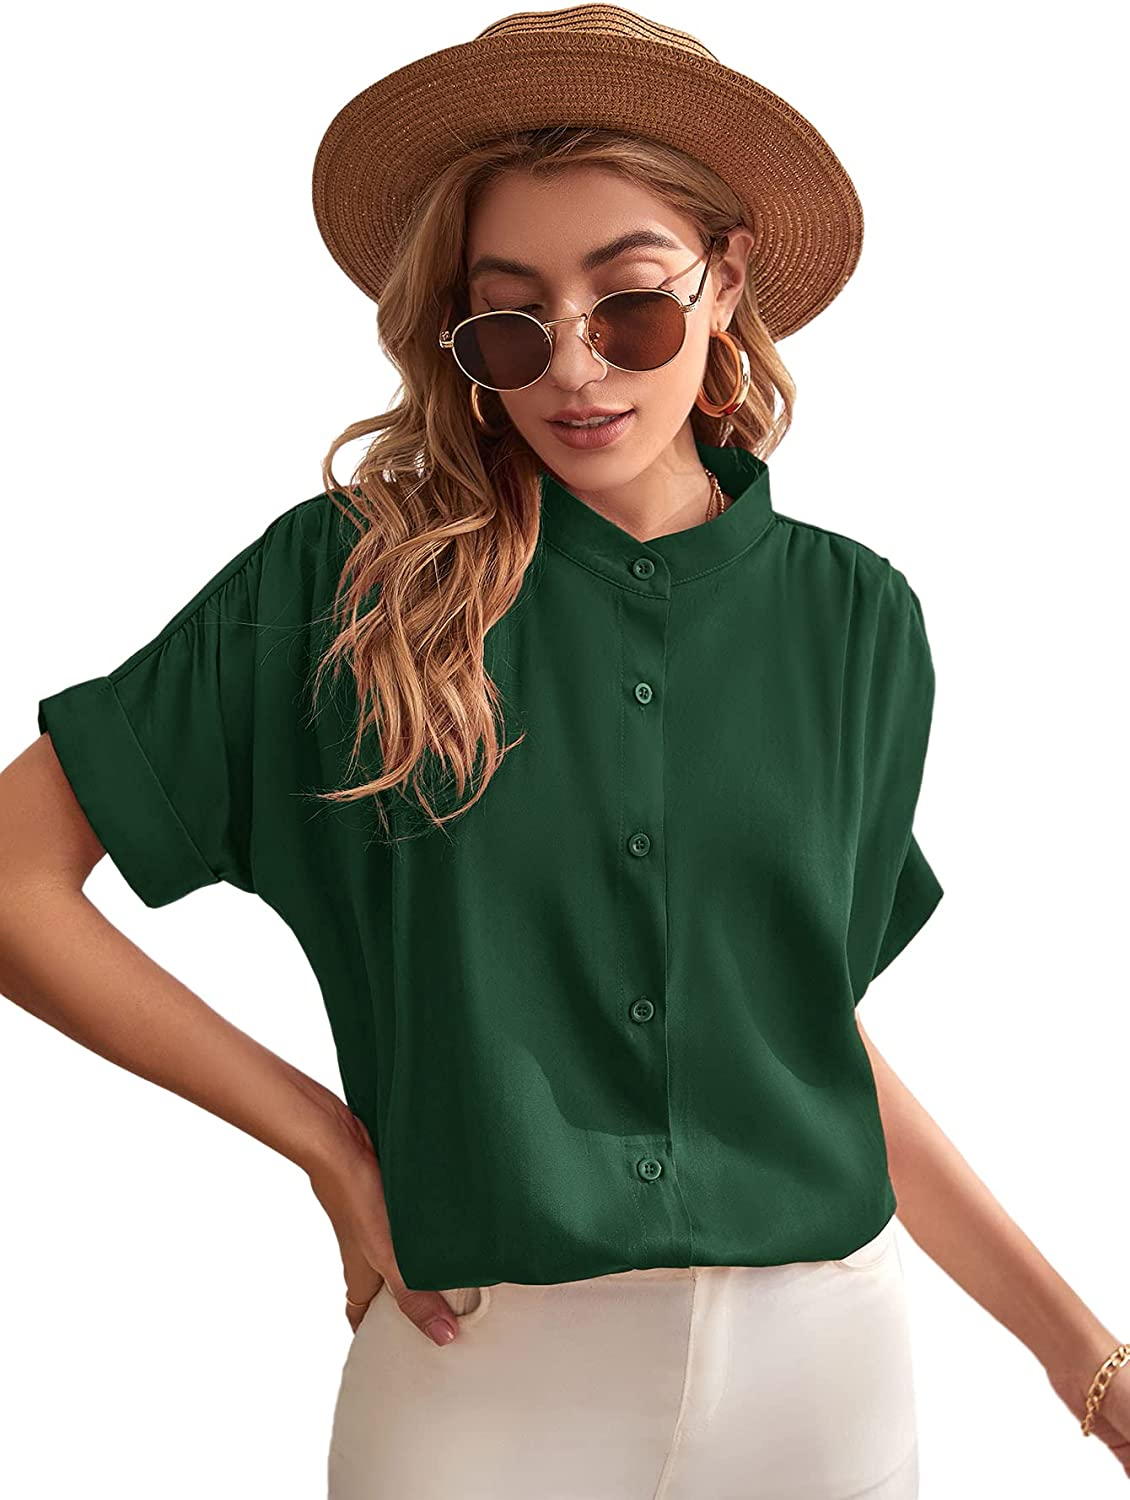 Milumia Women's Stand Collar Button Down Shirt Rolled Up Short Sleeve Blouse Top